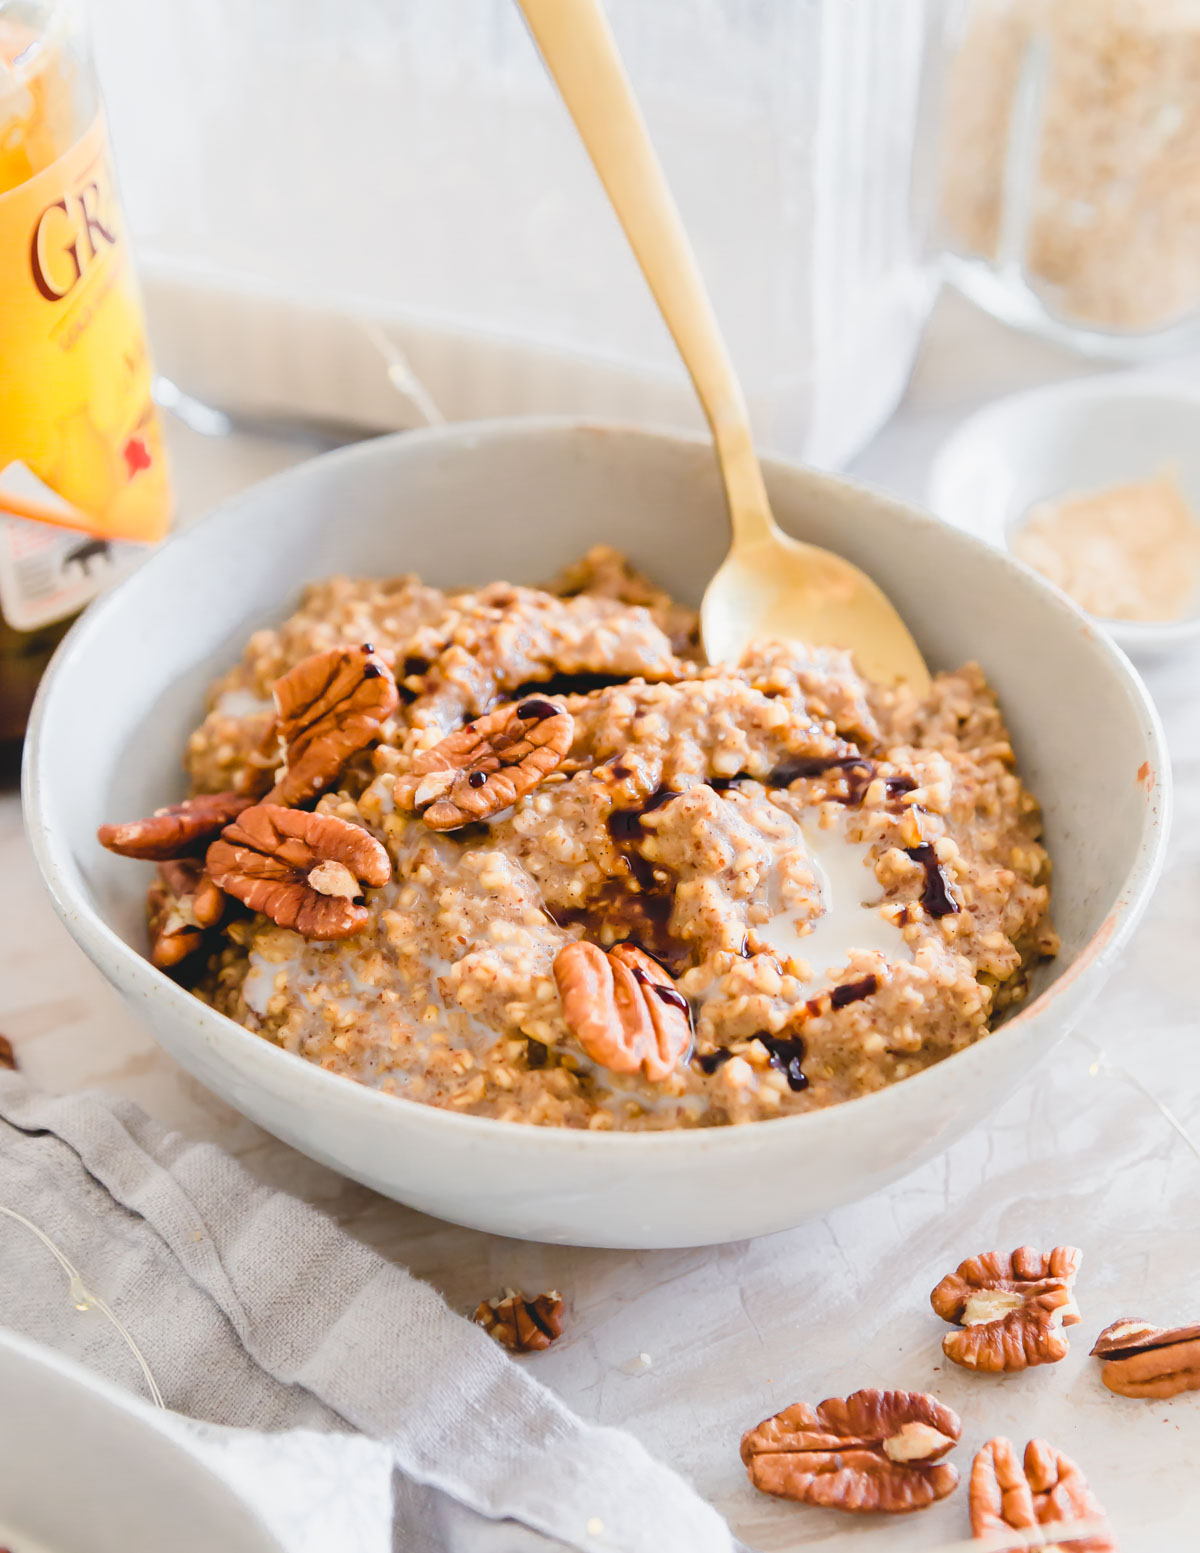 Gluten-free and vegan gingerbread oats made on the stove top in just 15 minutes.